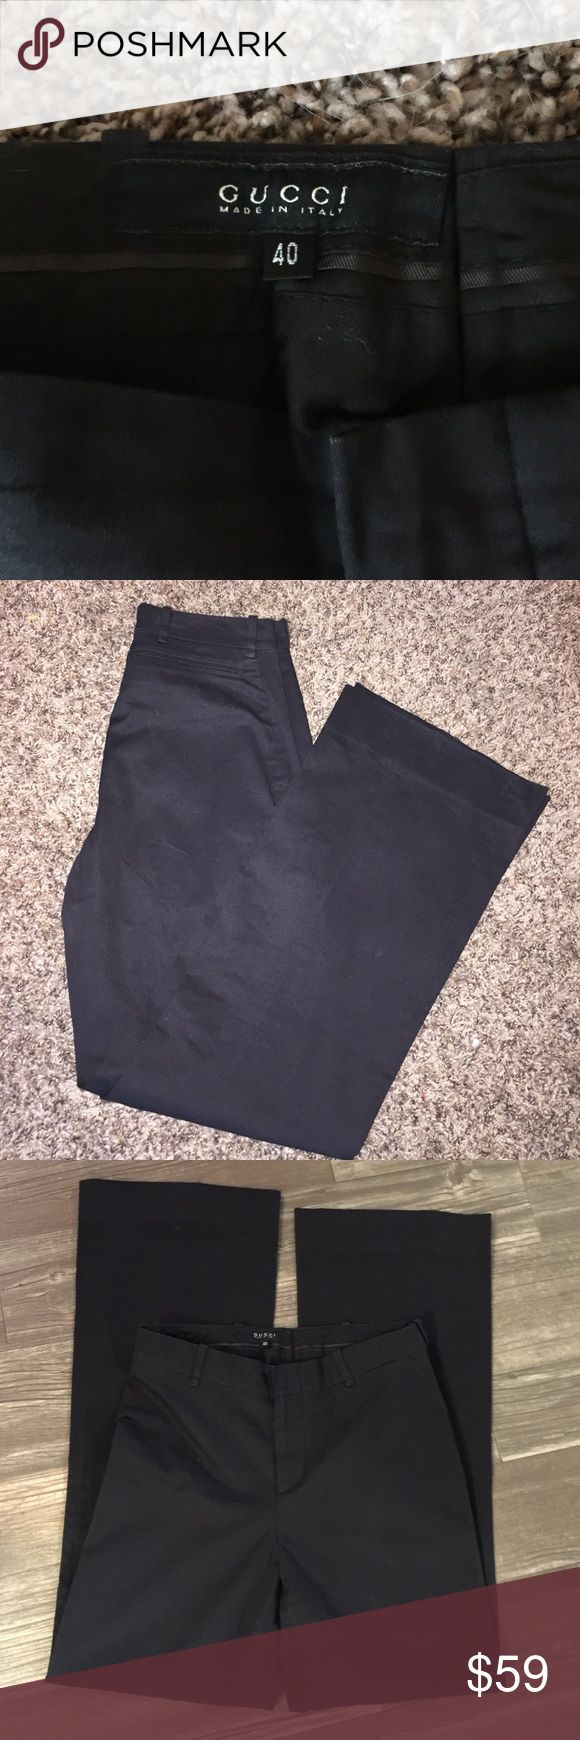 Gucci pants Ladies black Gucci pants made in Italy. Italian size 40. Inseam is 29 inches Gucci Pants Trousers